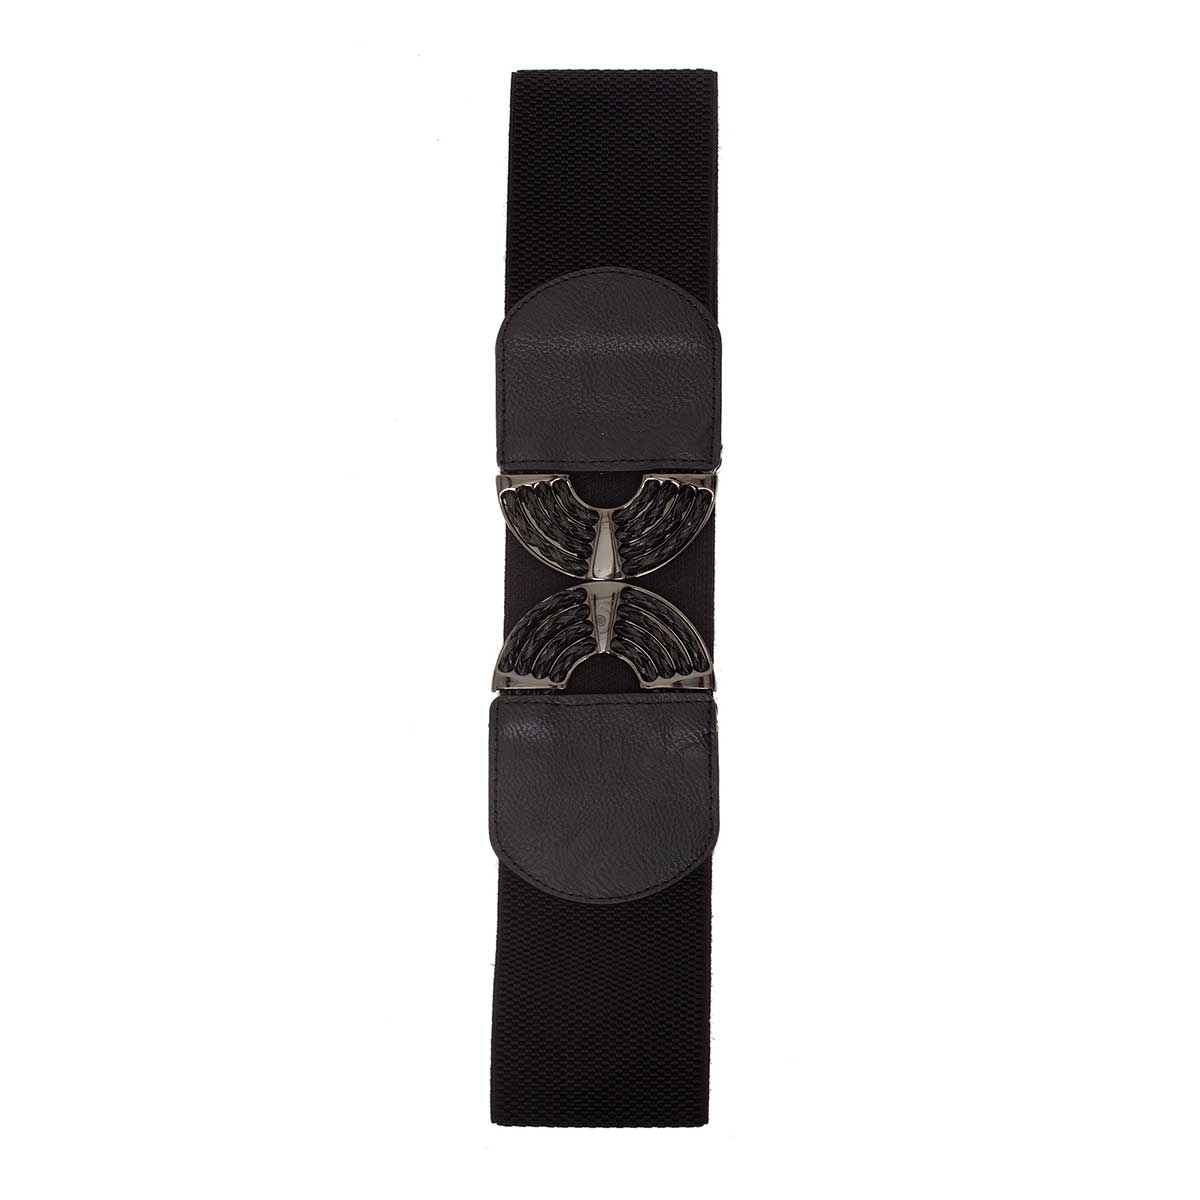 BK GUNMETAL BUCKLE STRETCH BELT